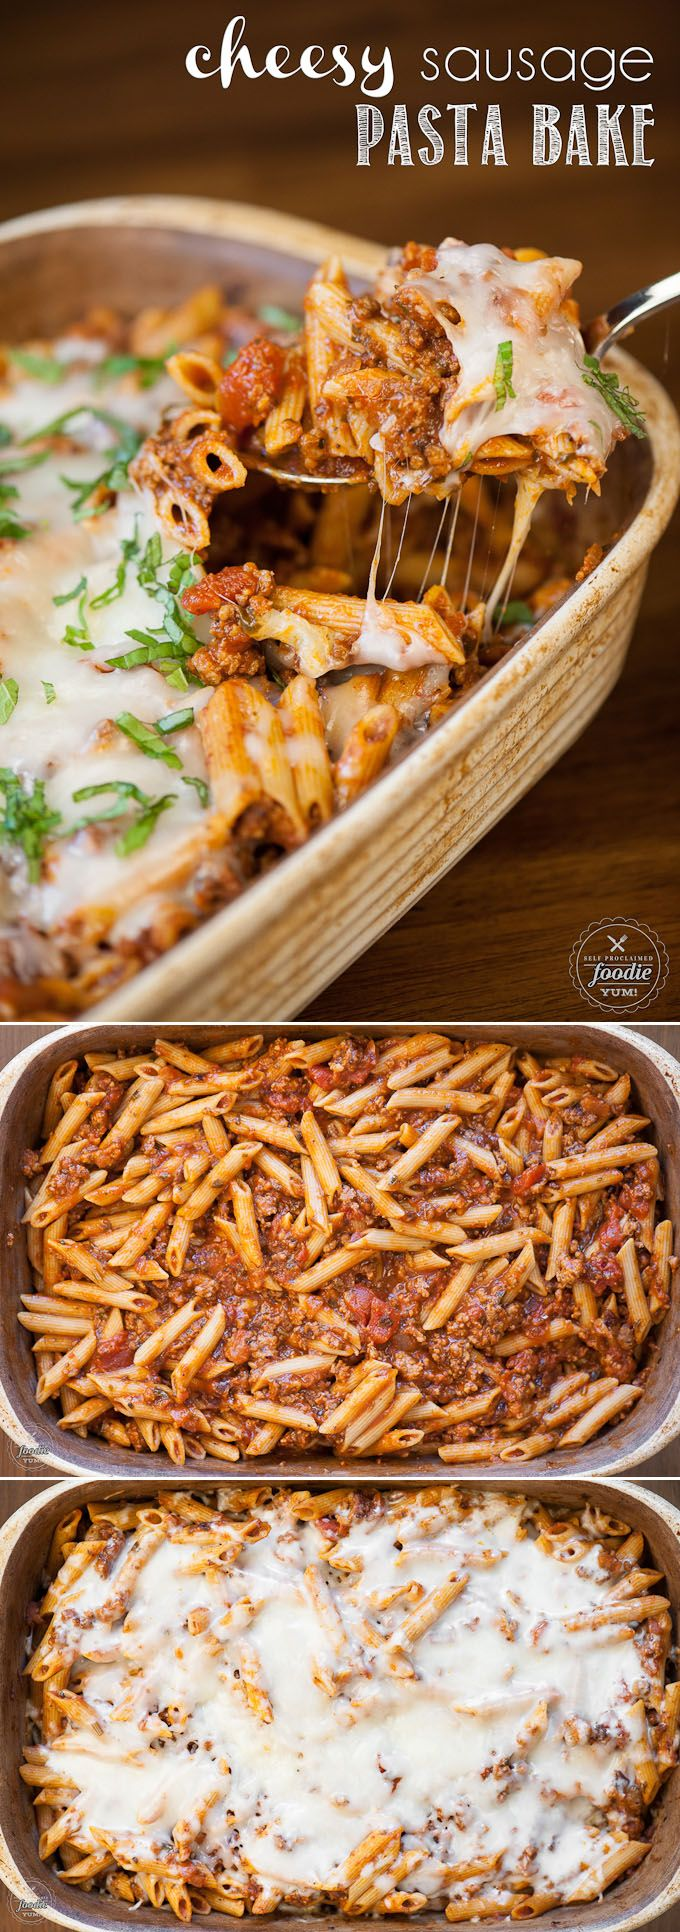 Whether you're making a kid friendly family dinner or preparing a big meal to delivery to another family, this Cheesy Sausage Pasta Bake is sure to please!